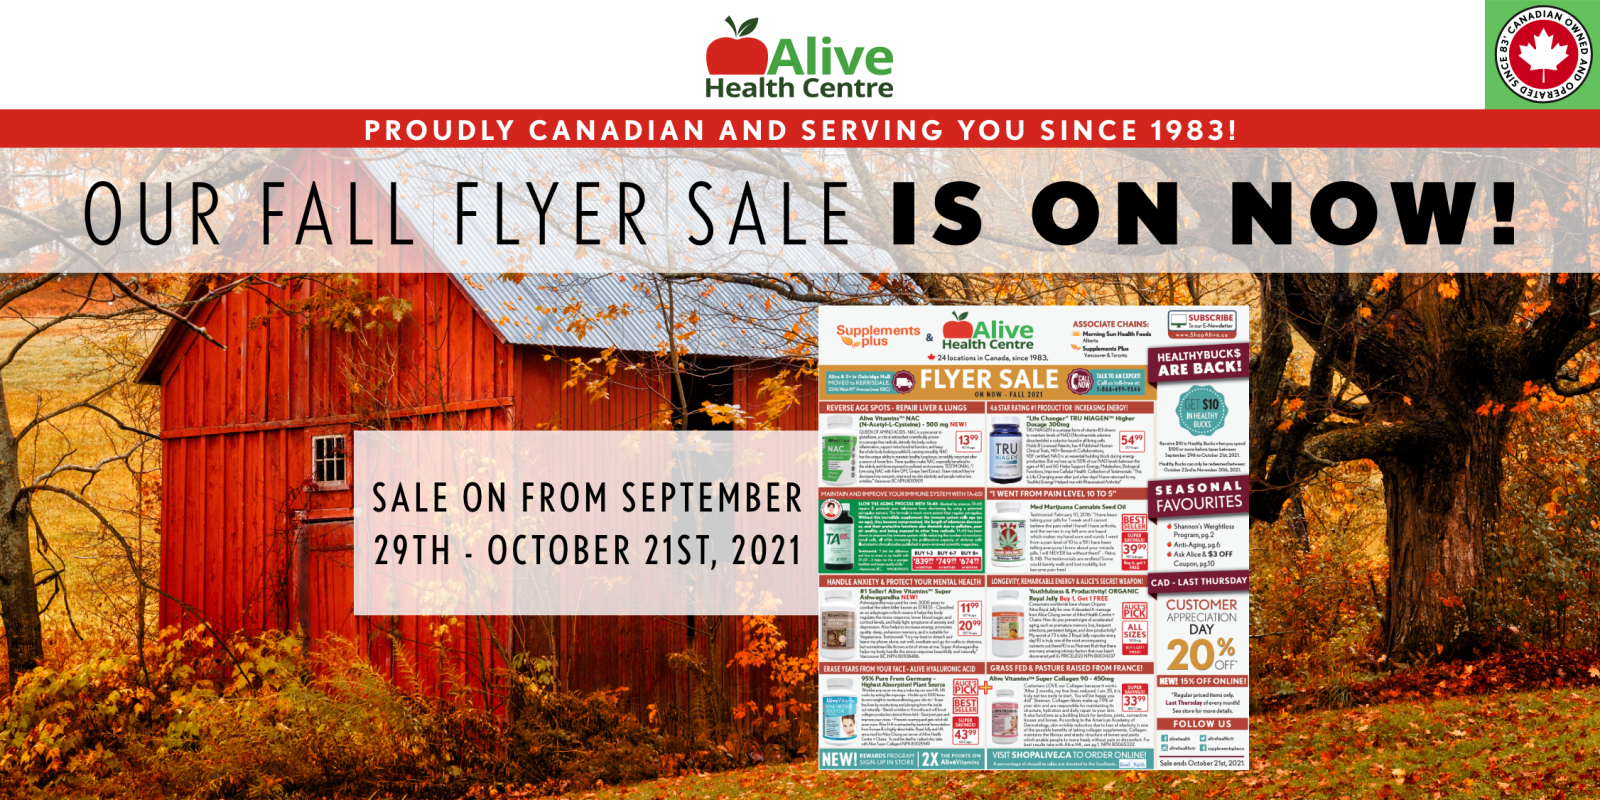 [Image] [offer] Our Fall Flyer Sale is on NOW!